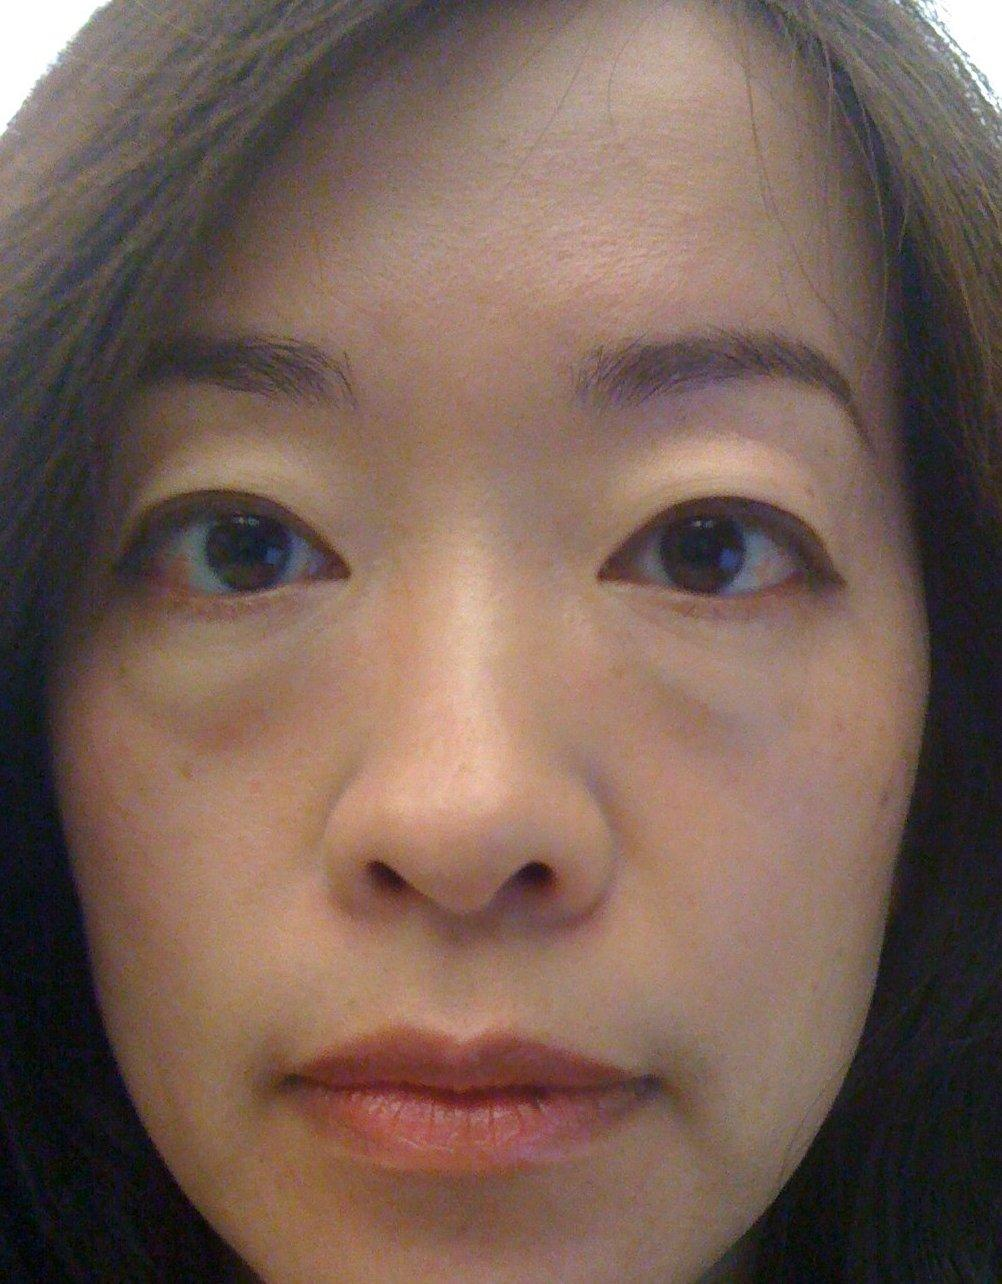 puffy eyes, puffy eyes question and answers | Firmoo Answers